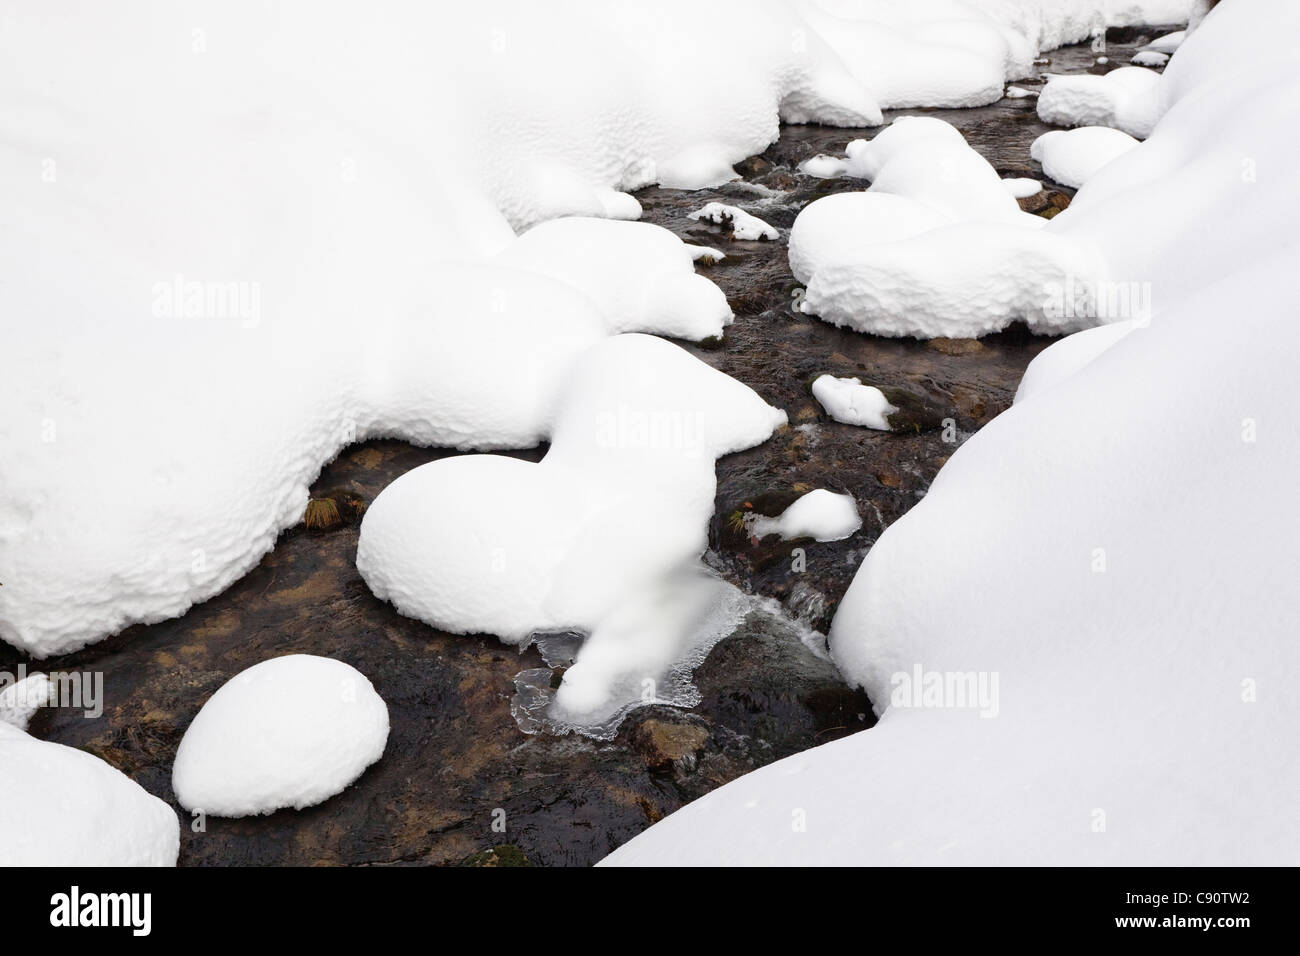 Creek Kleine Ohe with deep snow in winter, Bavarian Forest National Park, Lower Bavaria, Germany, Europe - Stock Image